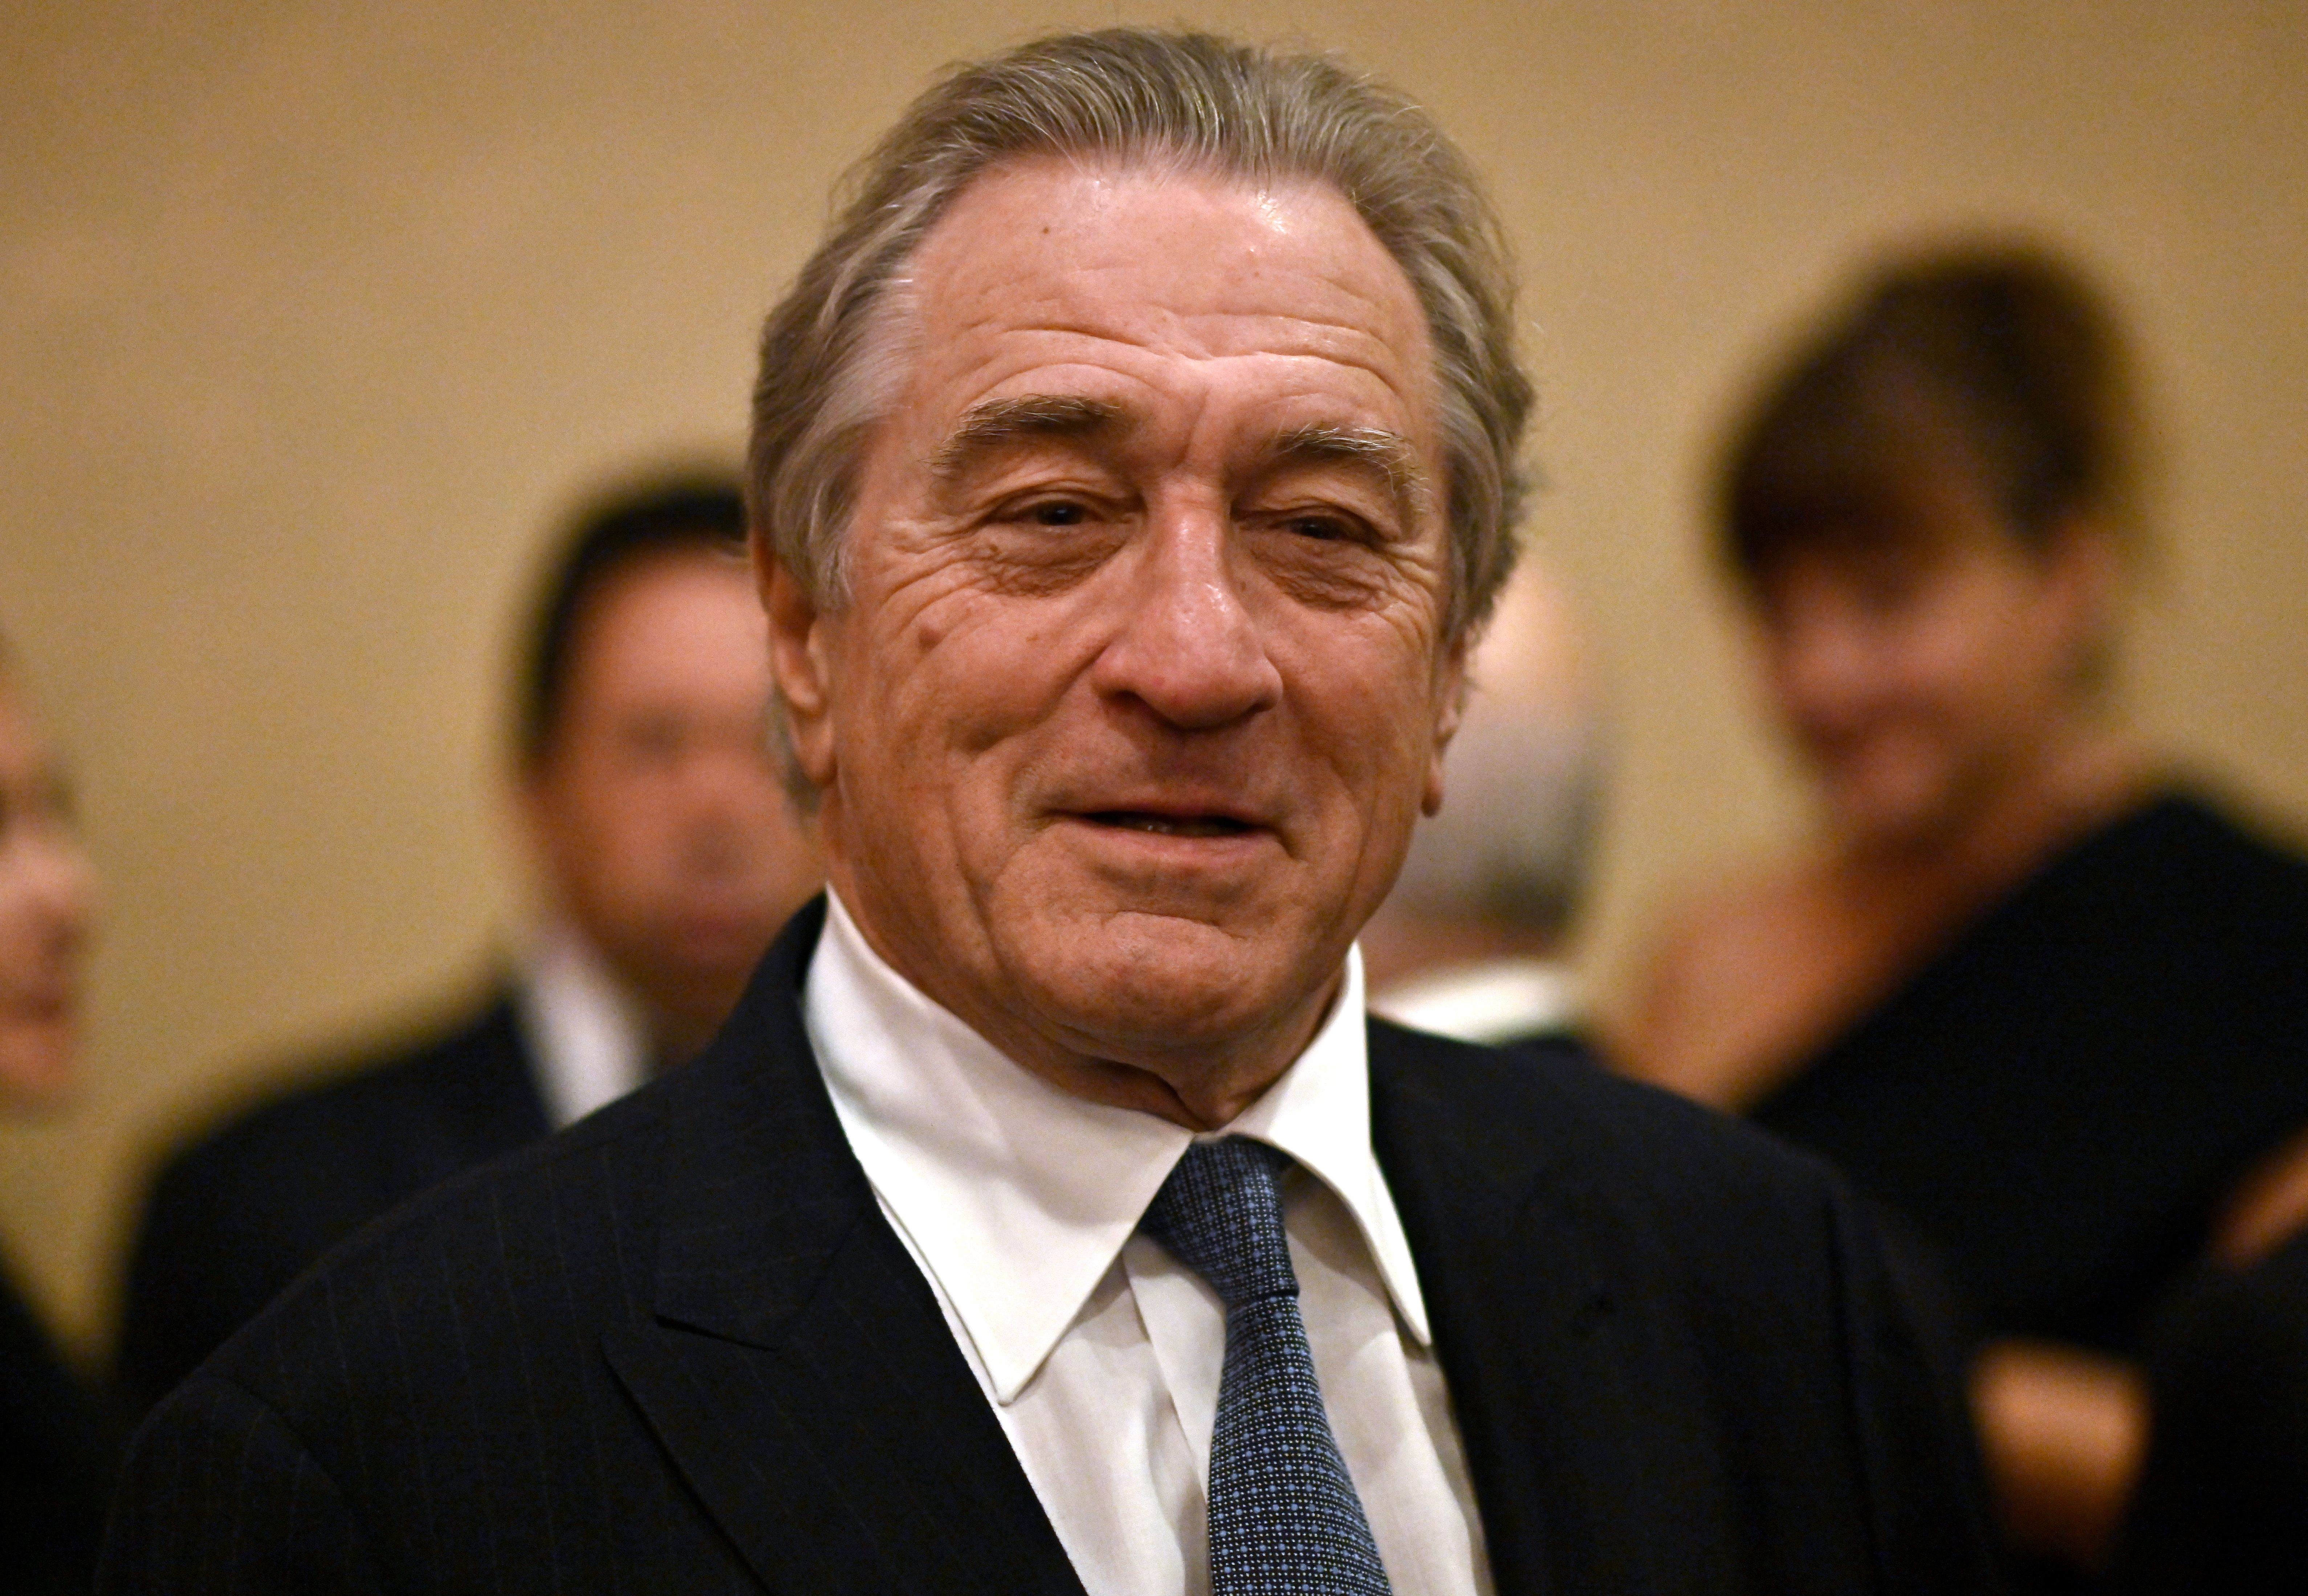 Robert De Niro Breaks Silence on Being Sent Pipe Bomb ...